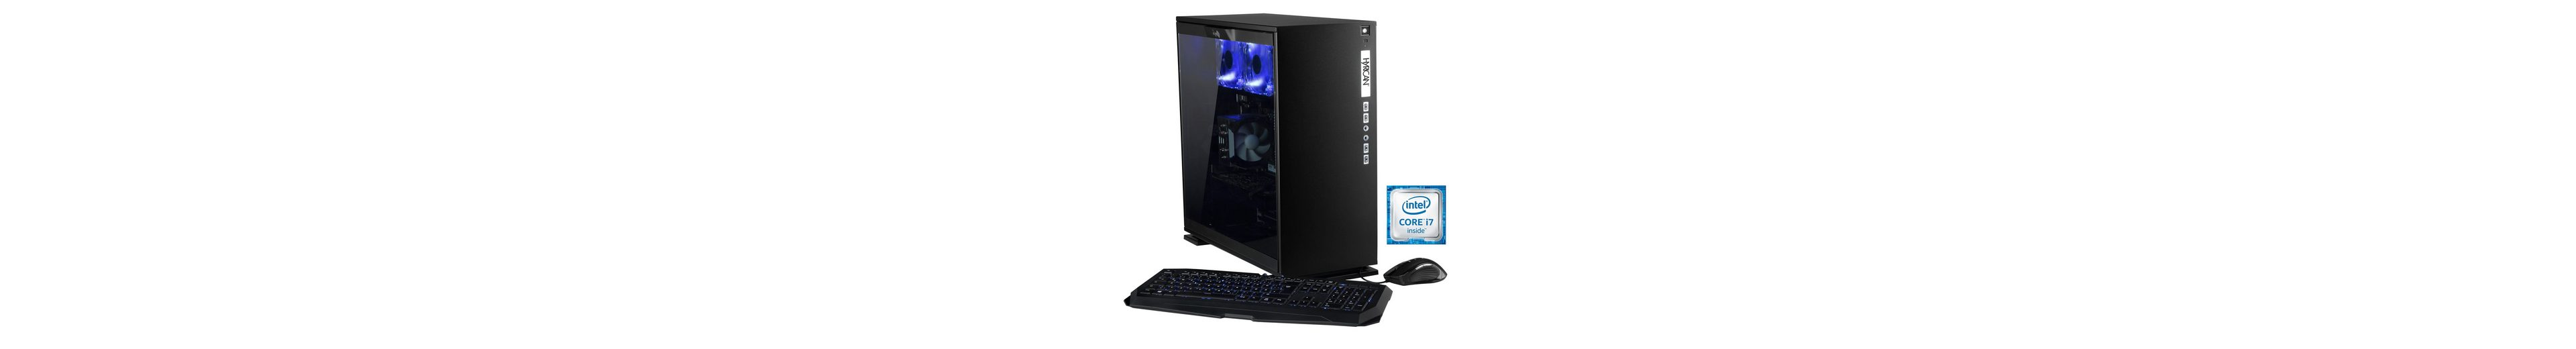 Hyrican Gaming PC Intel® i7-6850K, 32GB, SSD + HDD, GeForce® GTX 1080 »Elegance 5342 noir«